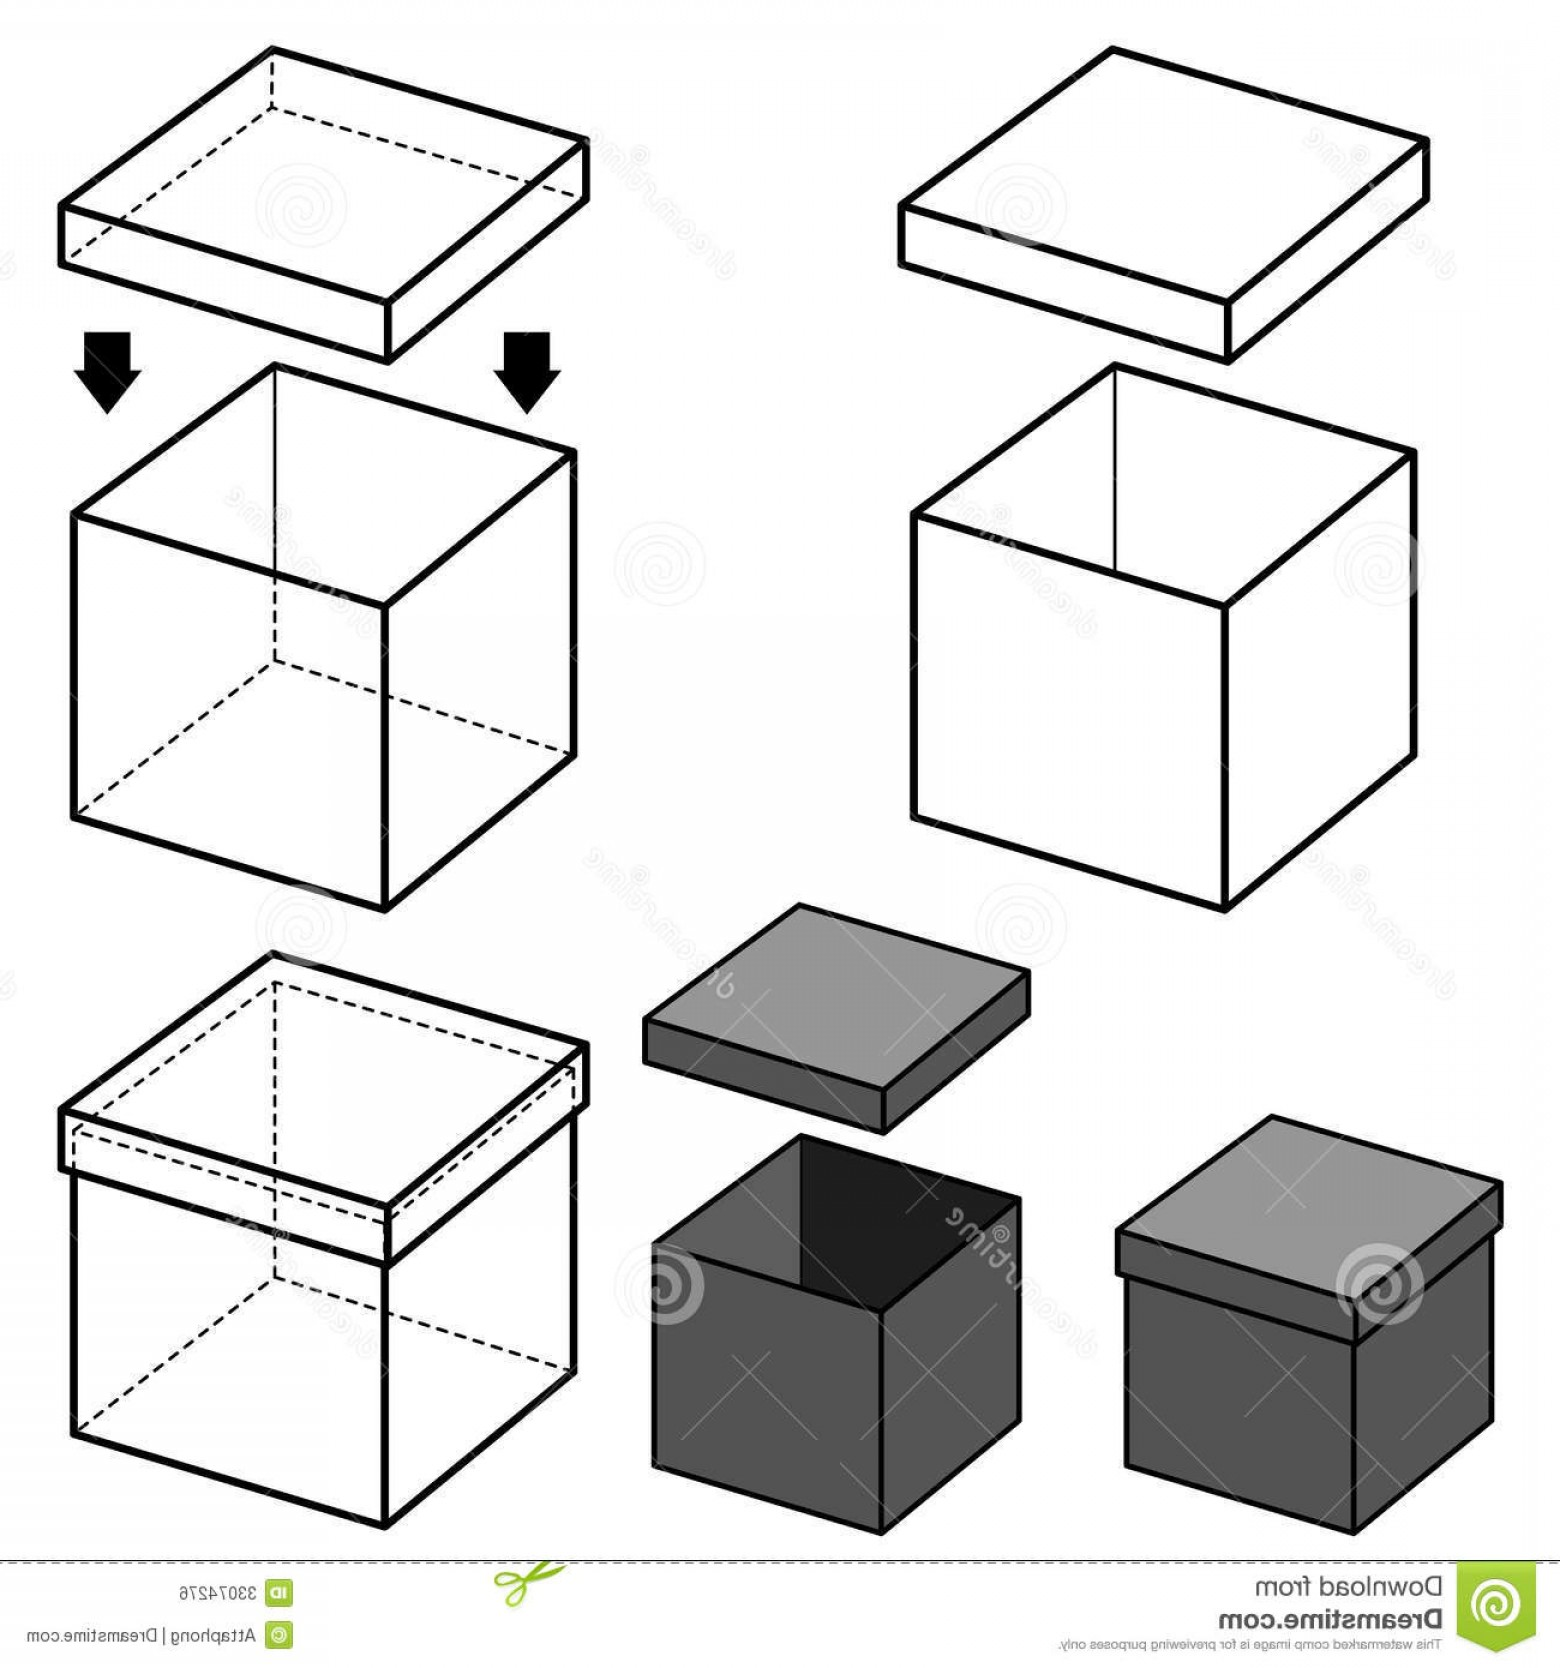 Box Outline Vector: Royalty Free Stock Image Box Vector Image Boxes Outline Shade Image